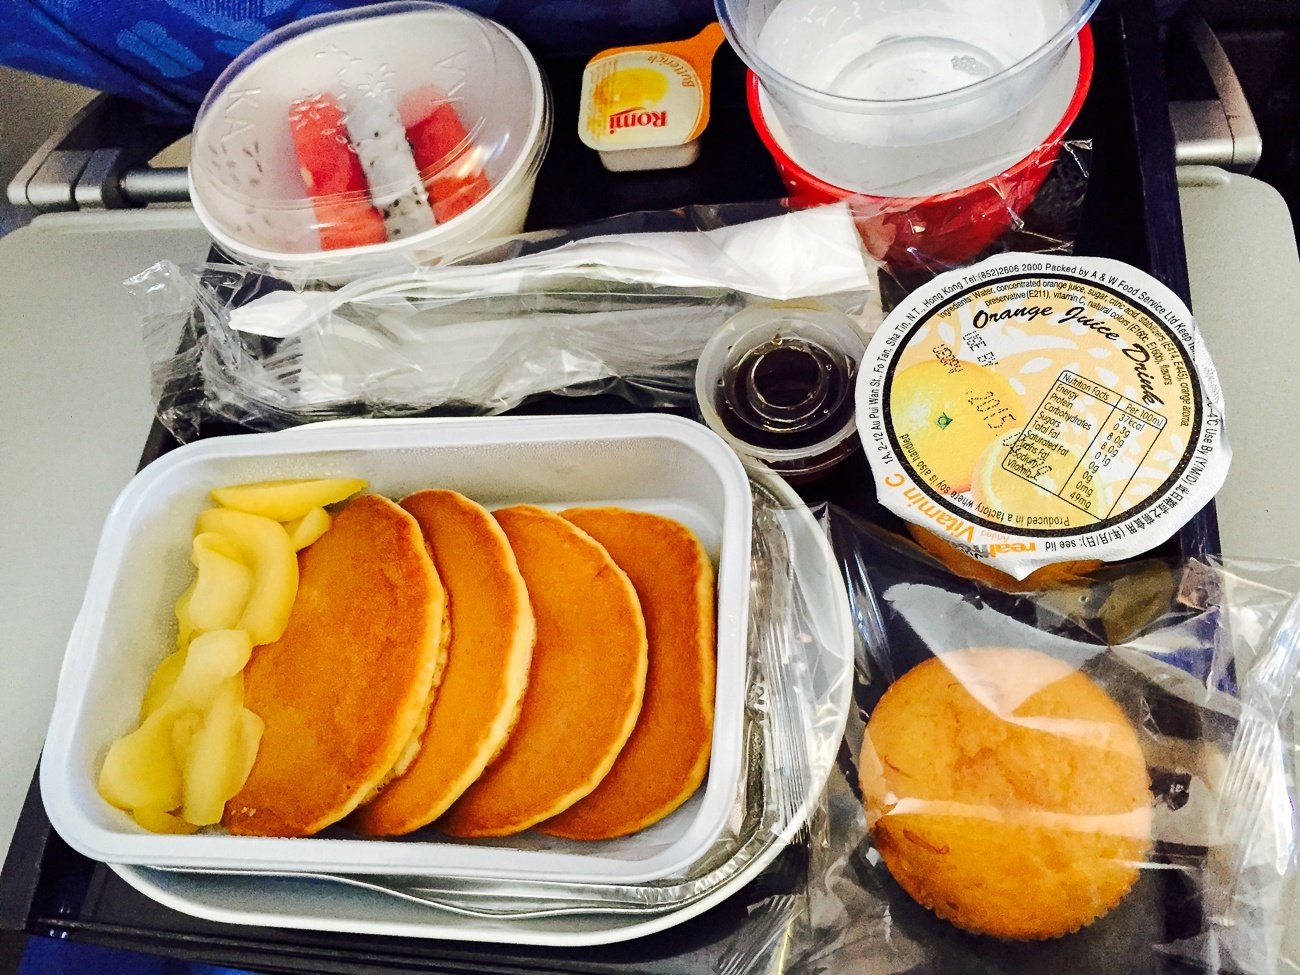 A children's meal on a Dragonair short haul flight between Hong Kong and Kota Kinabalu